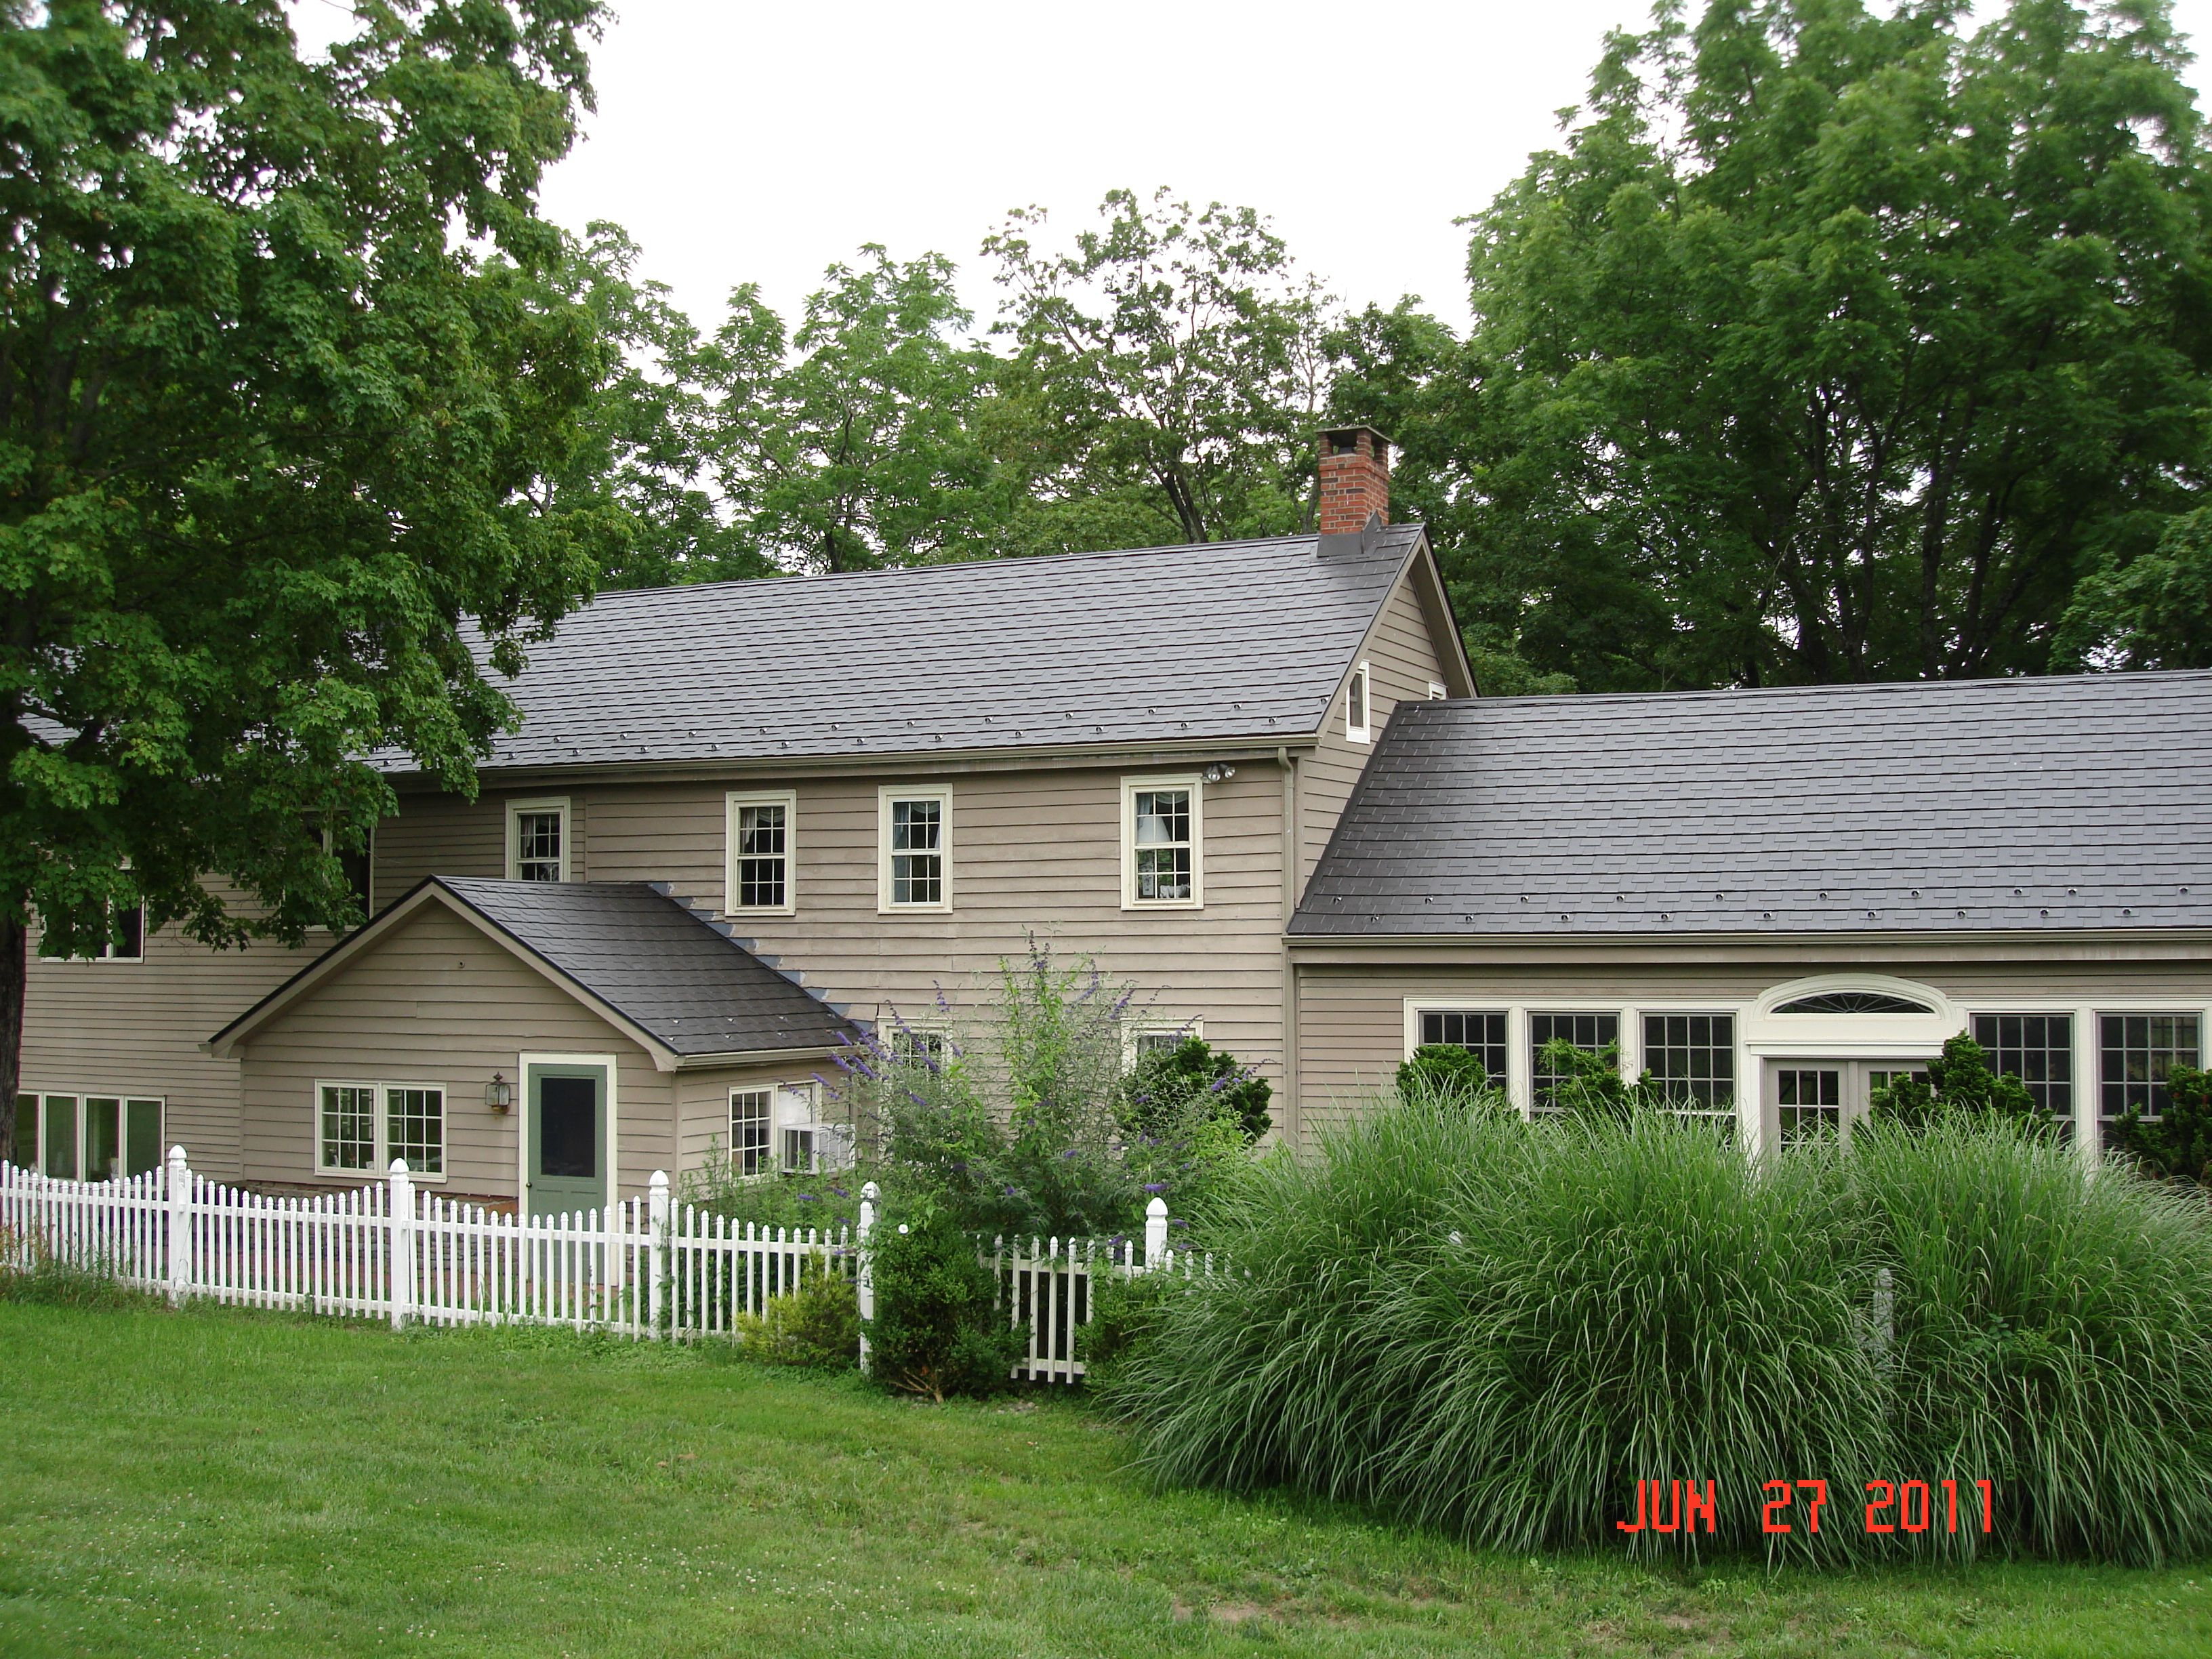 How To Choose Between Standing Seam And Metal Shingle Roofing Metal Roof Colors Metal Shingle Roof Standing Seam